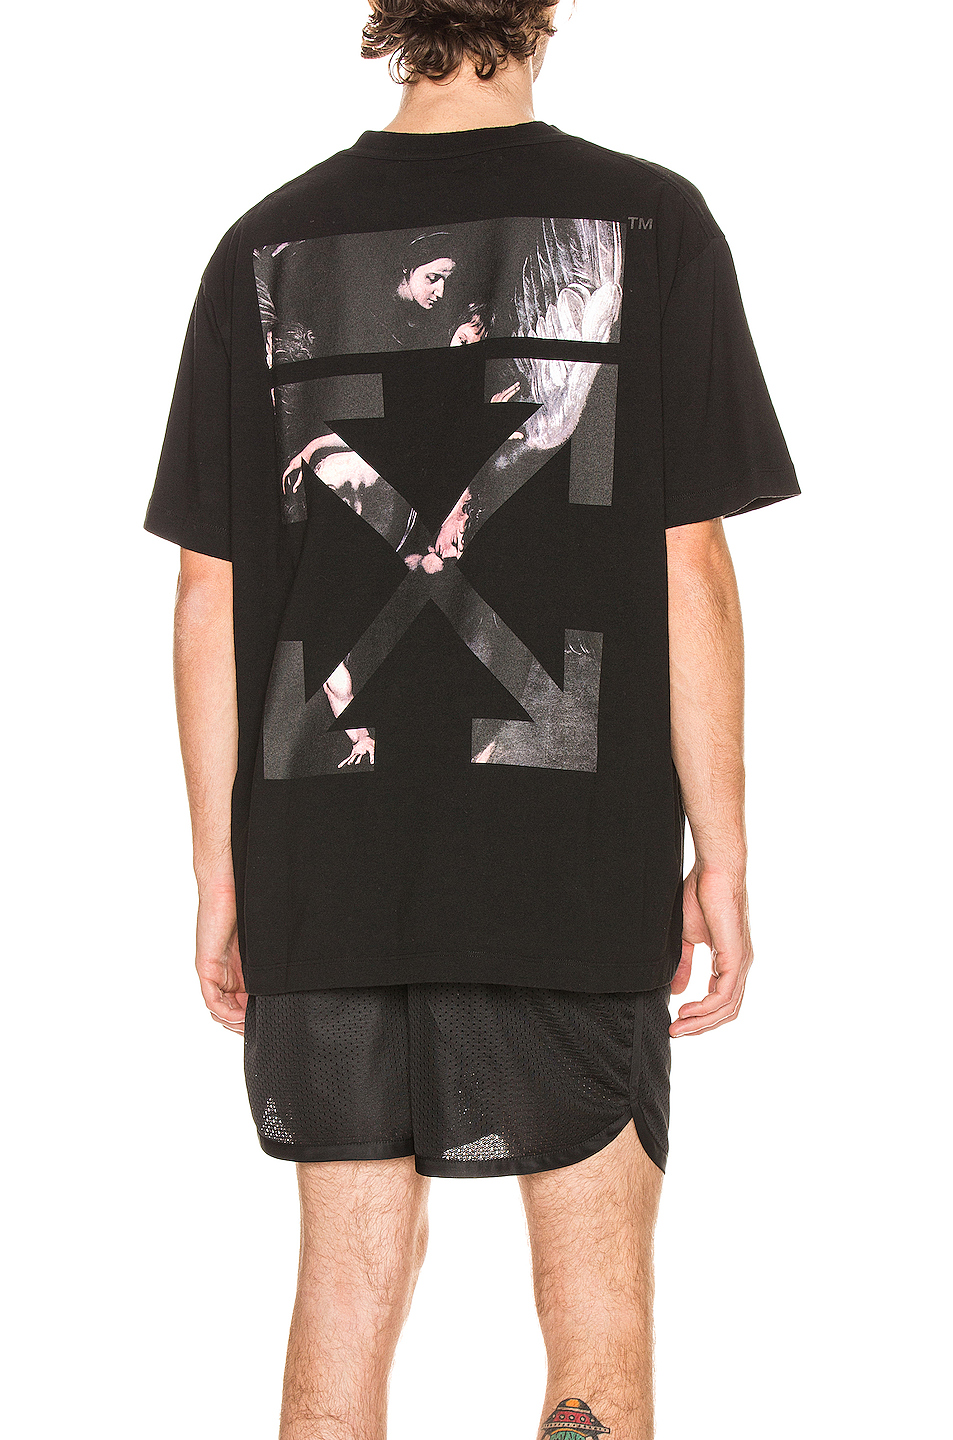 Buy Original OFF-WHITE Caravaggio Arrow